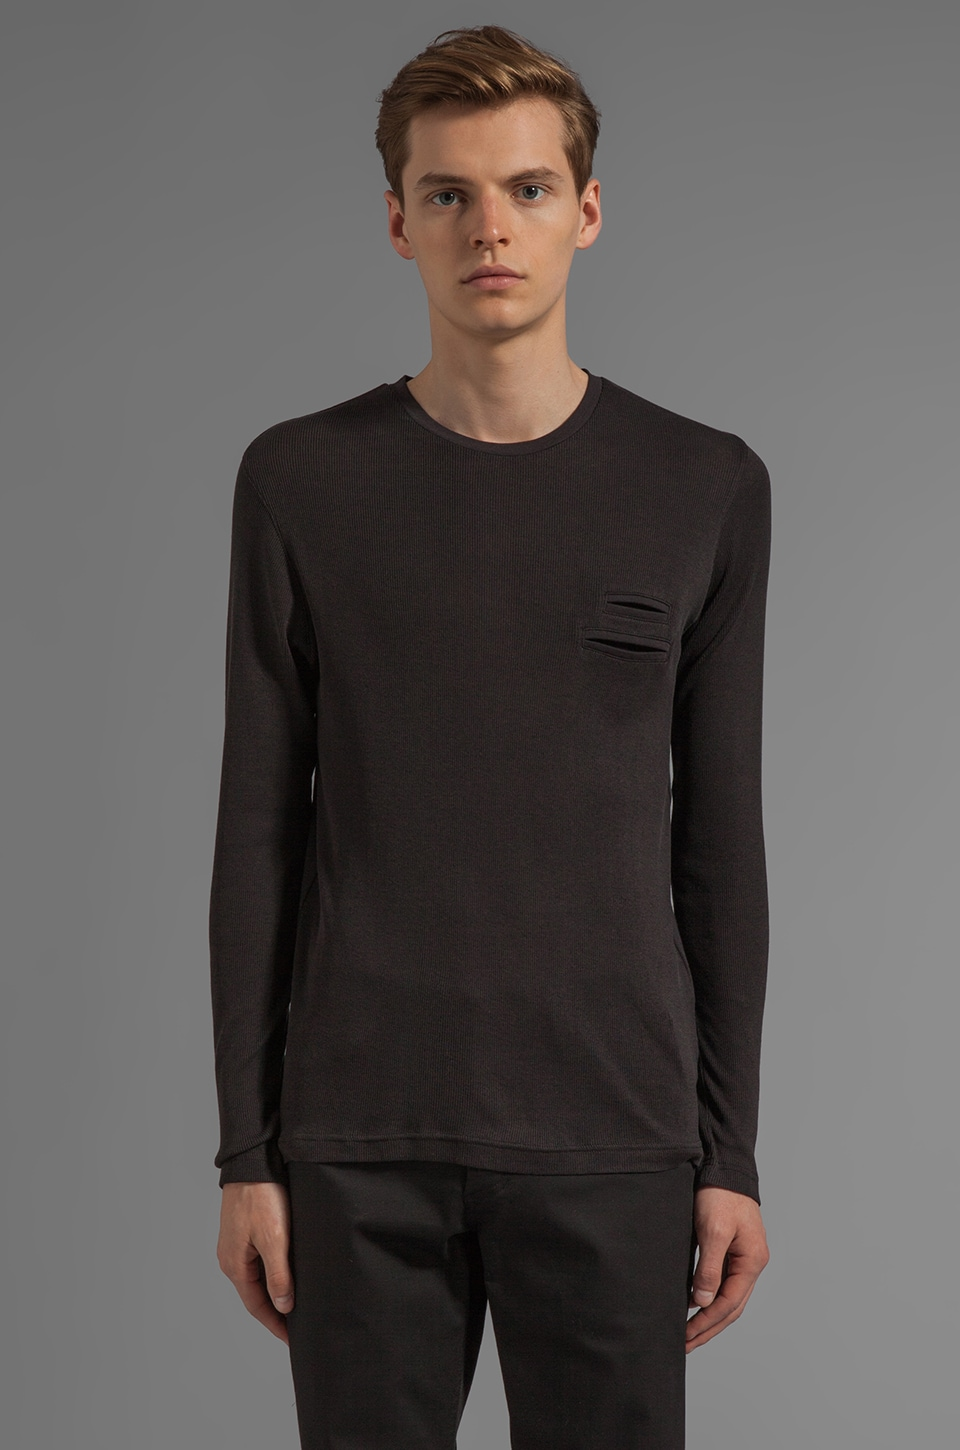 adidas SLVR Fabric Mix Long Sleeve Tee in Black